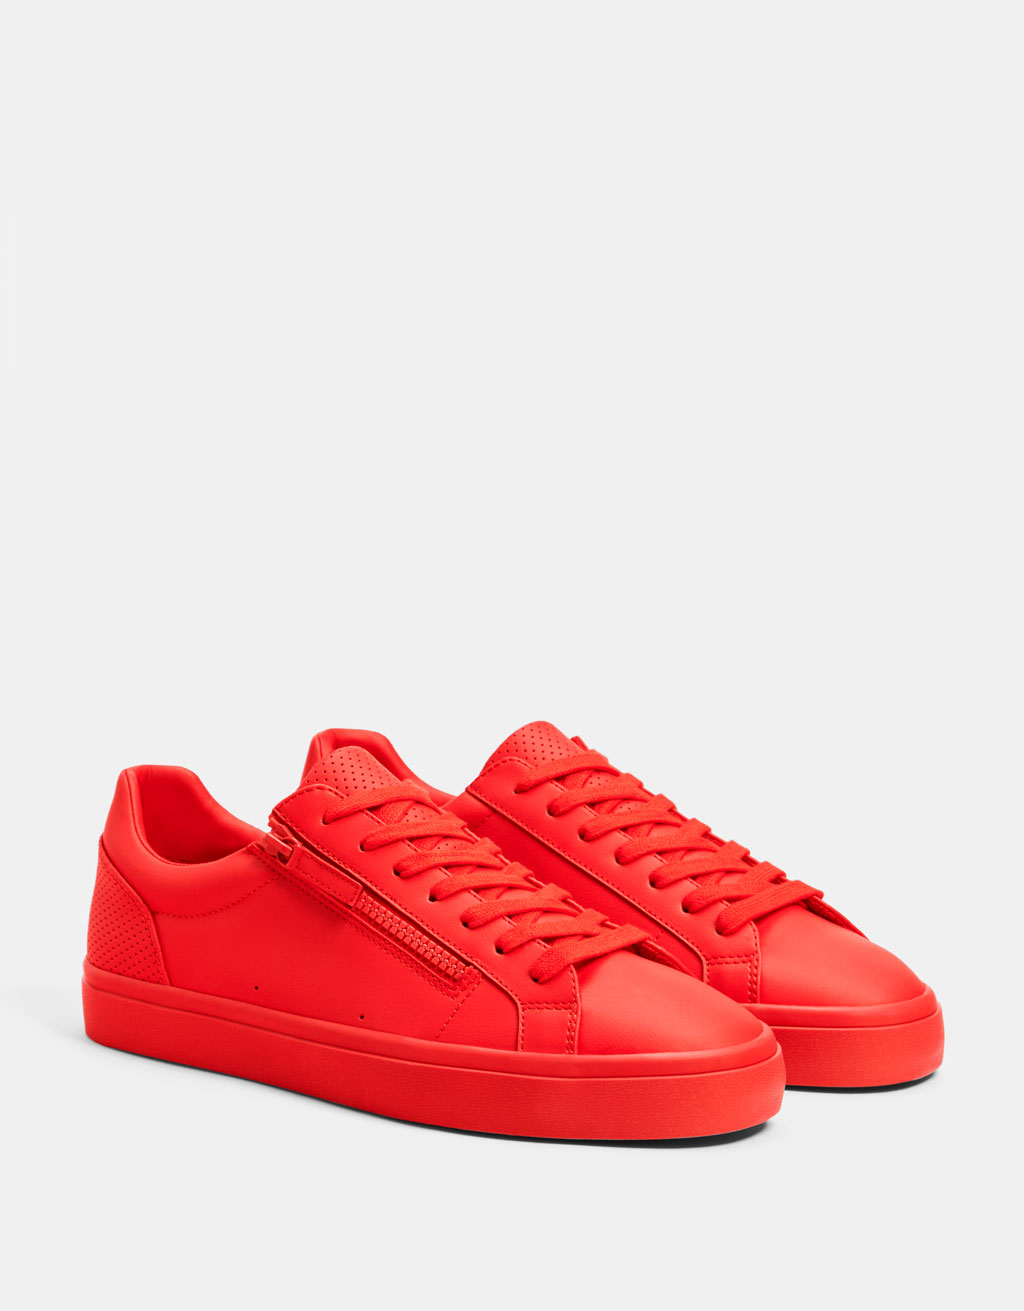 Men's red sneakers with zipper